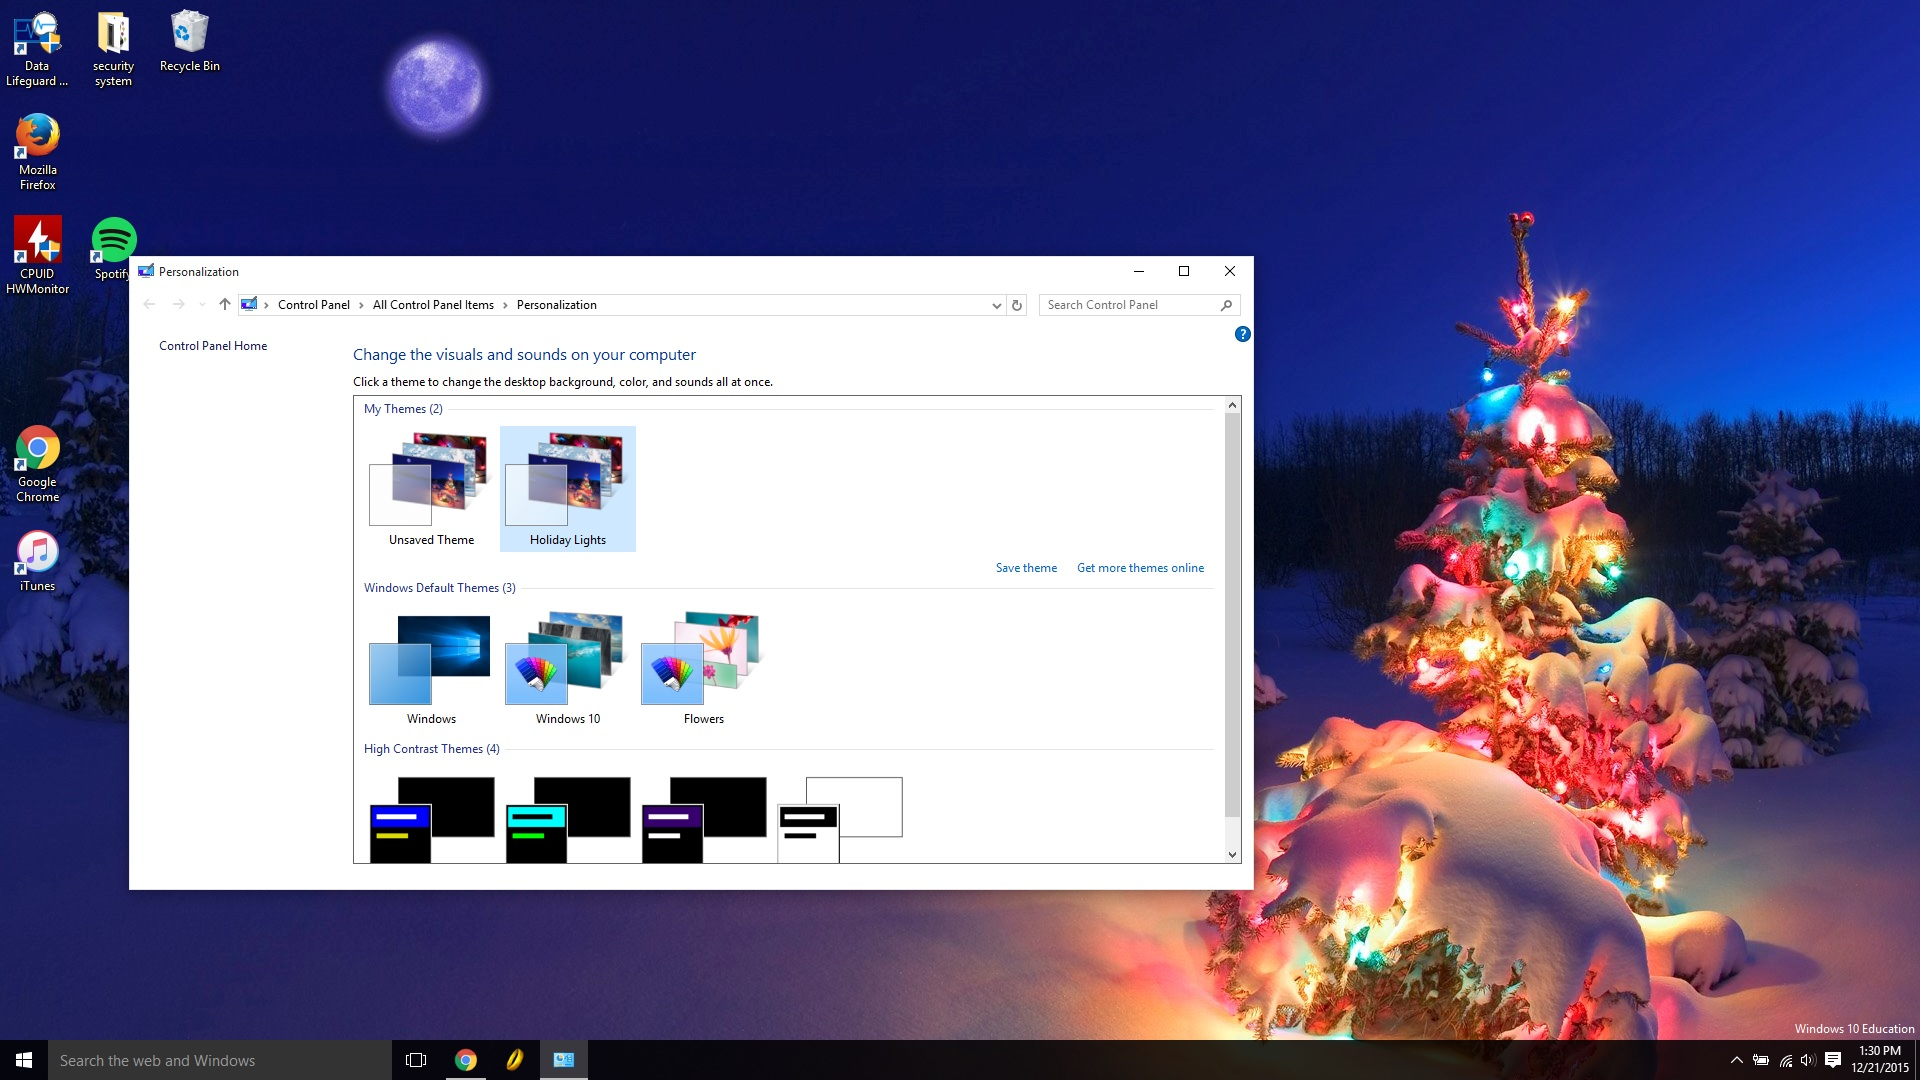 How To Enable And Download Themes In Windows 10